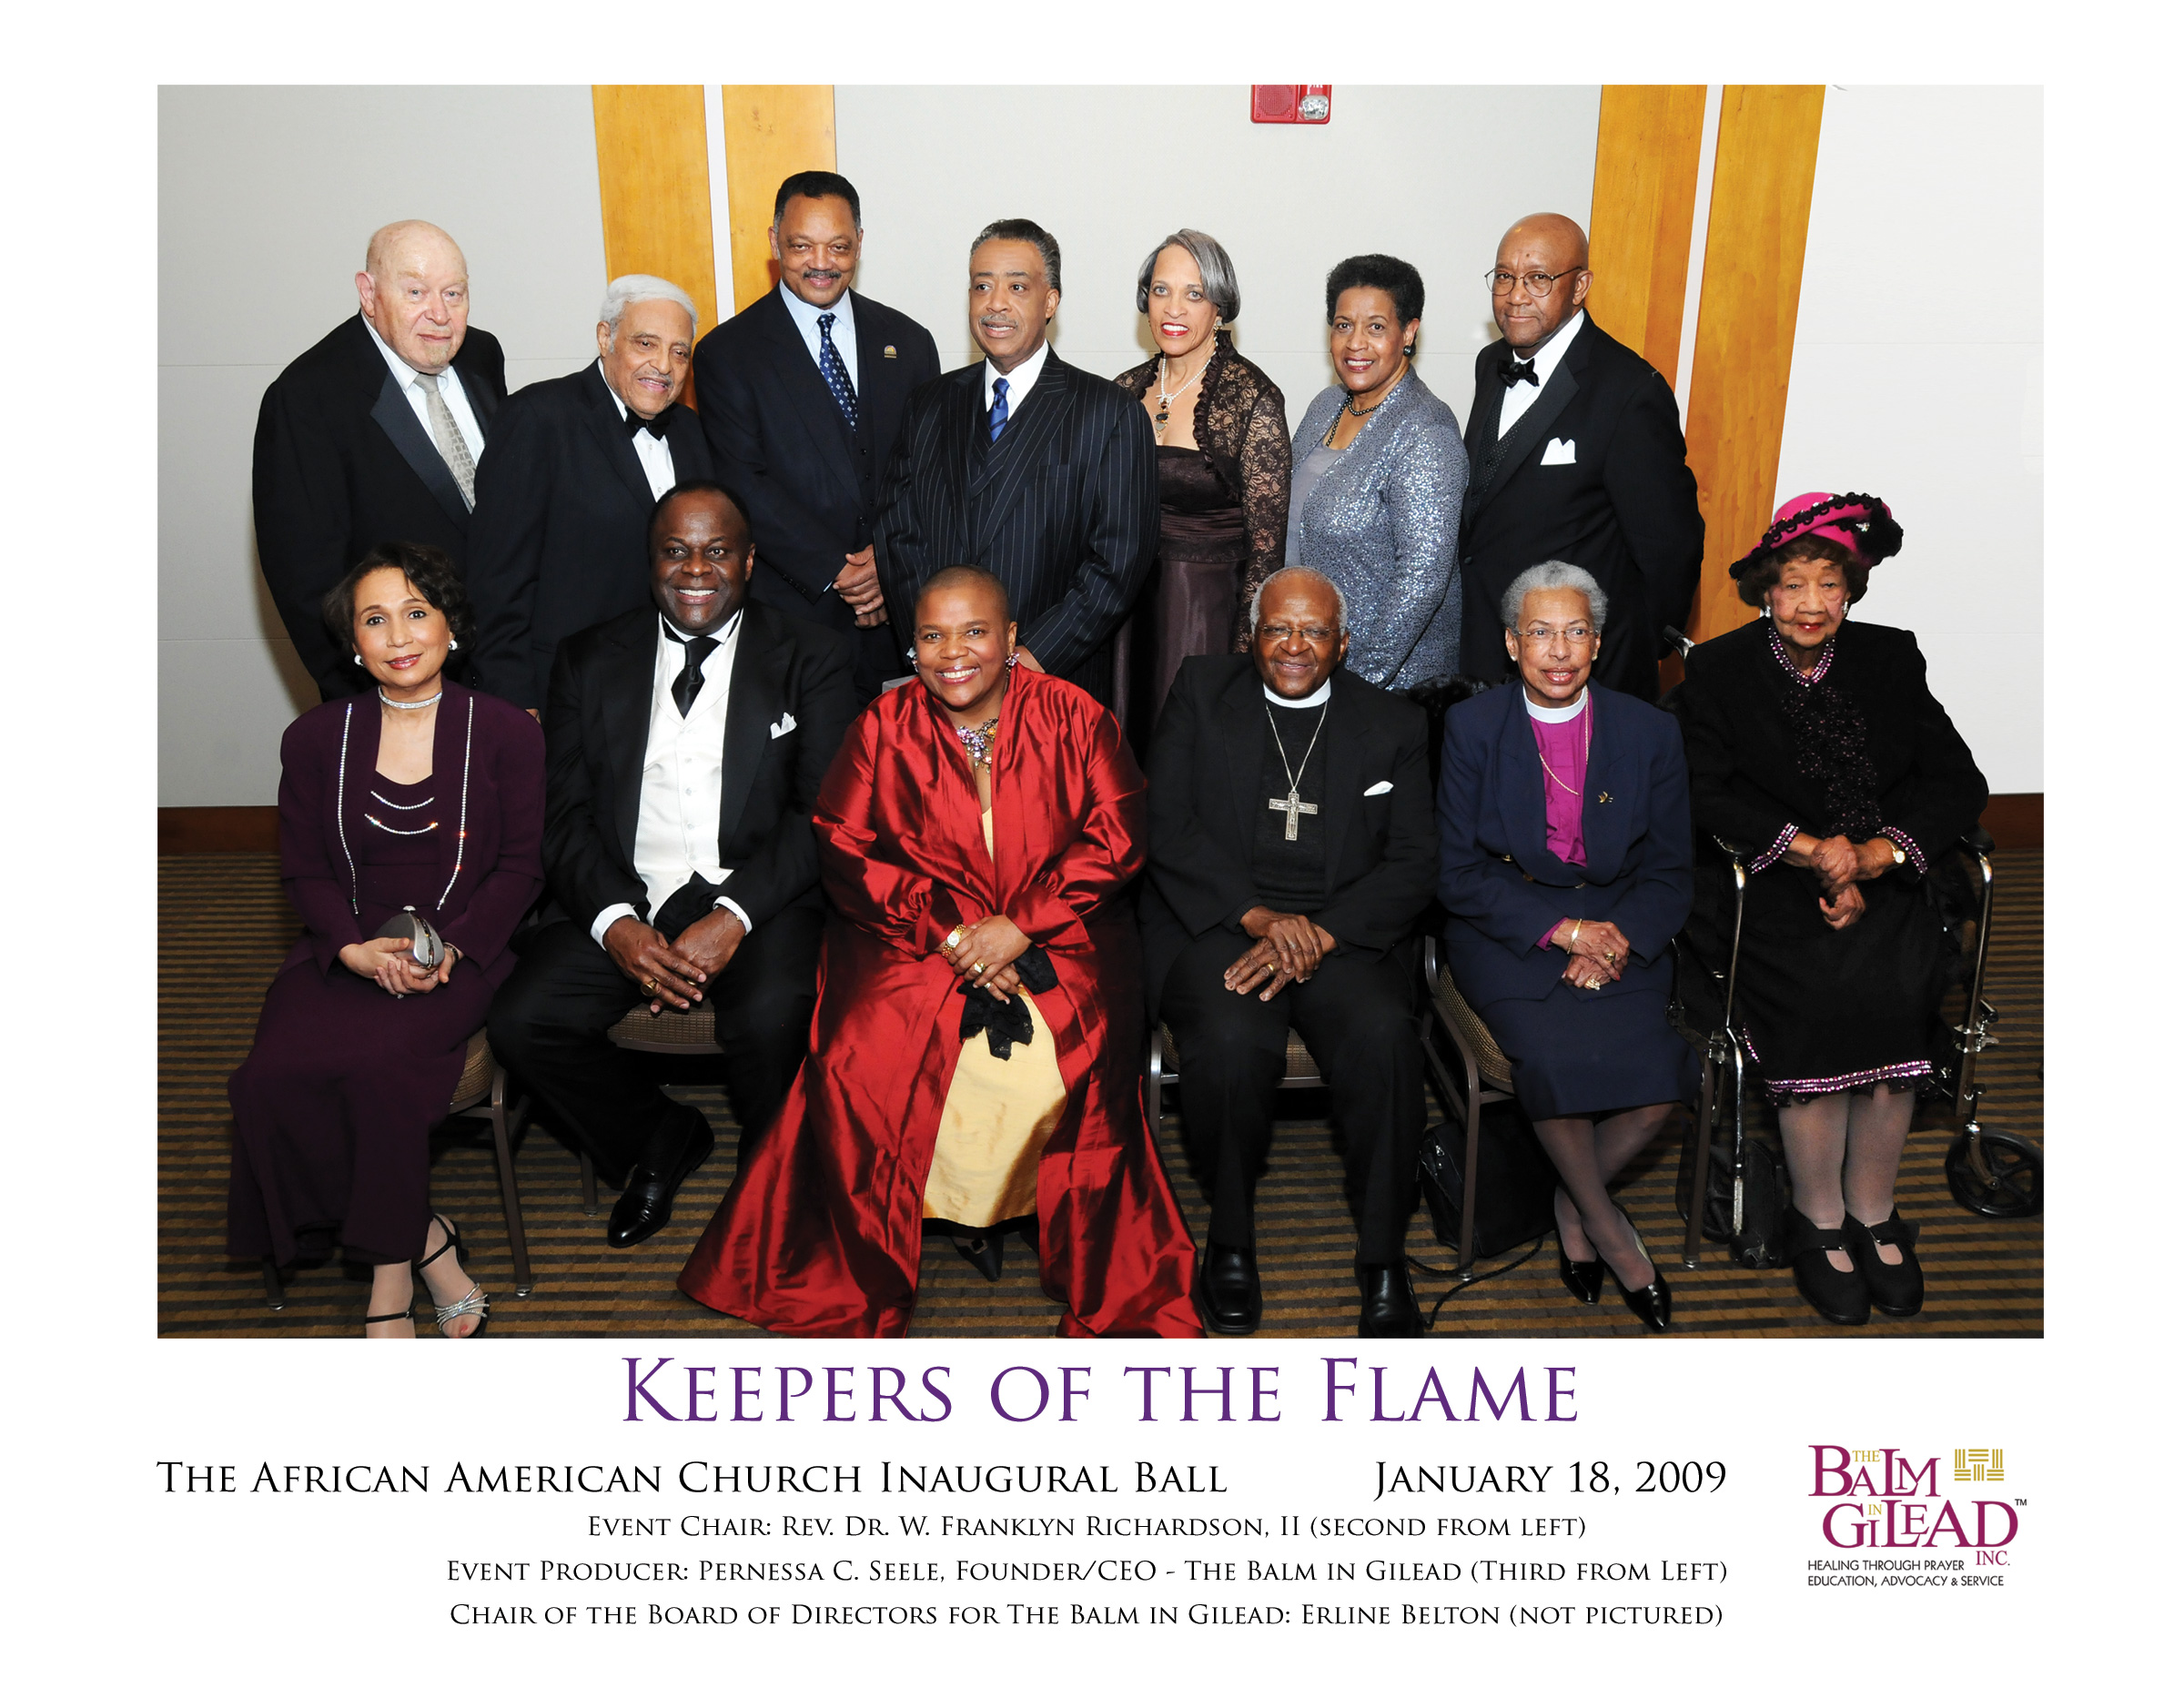 Inaugural-Keepers-of-the-Flame-Honorees-with-Producer-Pernessa-Seele-and-Event-Chair-Rev-Dr-W-Franklyn-Richardson